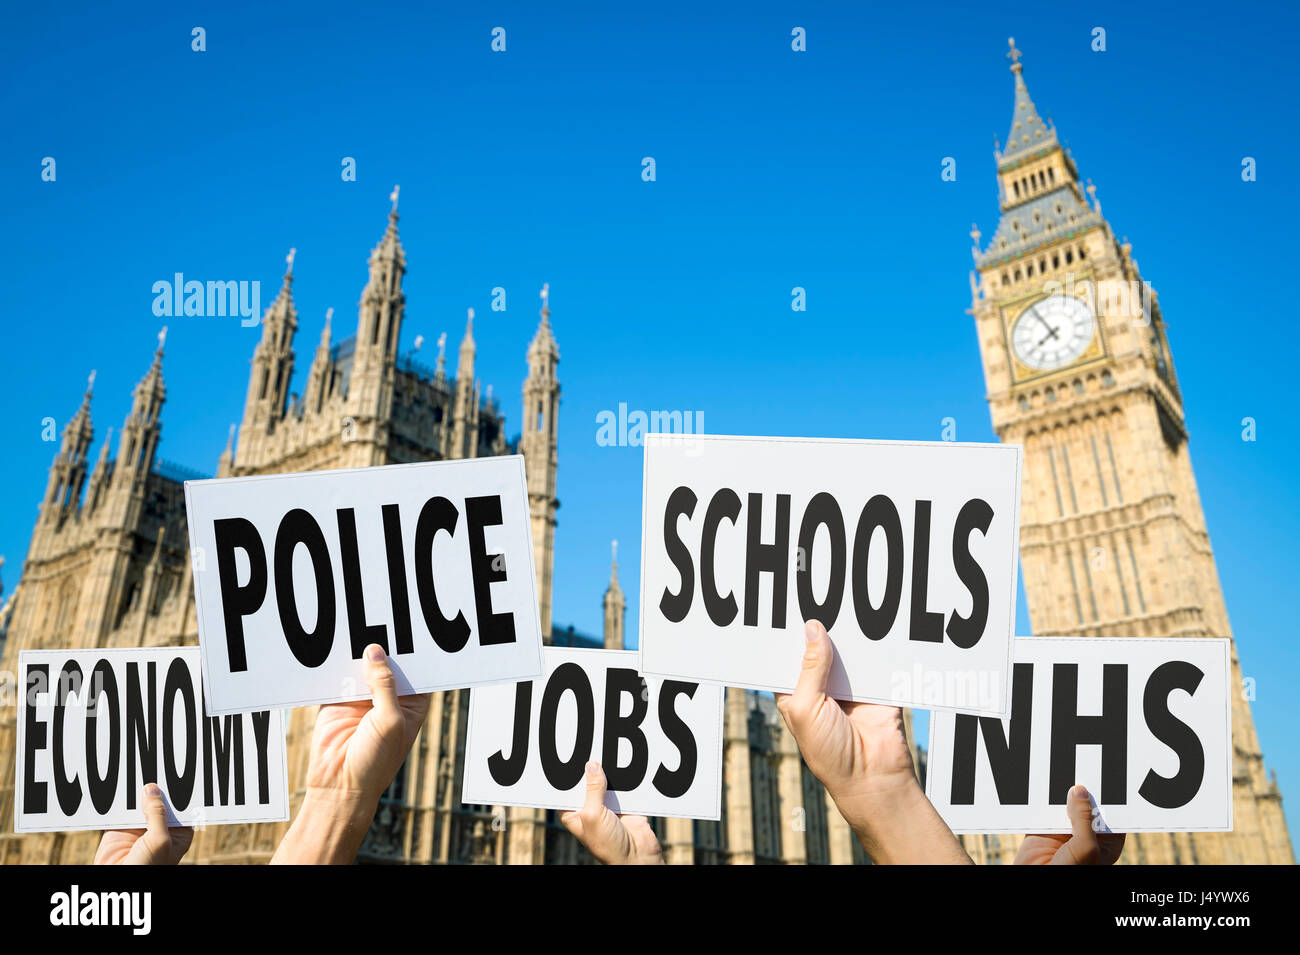 Hands holding signs with election issues like economy, police, jobs, schools, and the NHS outside Houses of Parliament - Stock Image